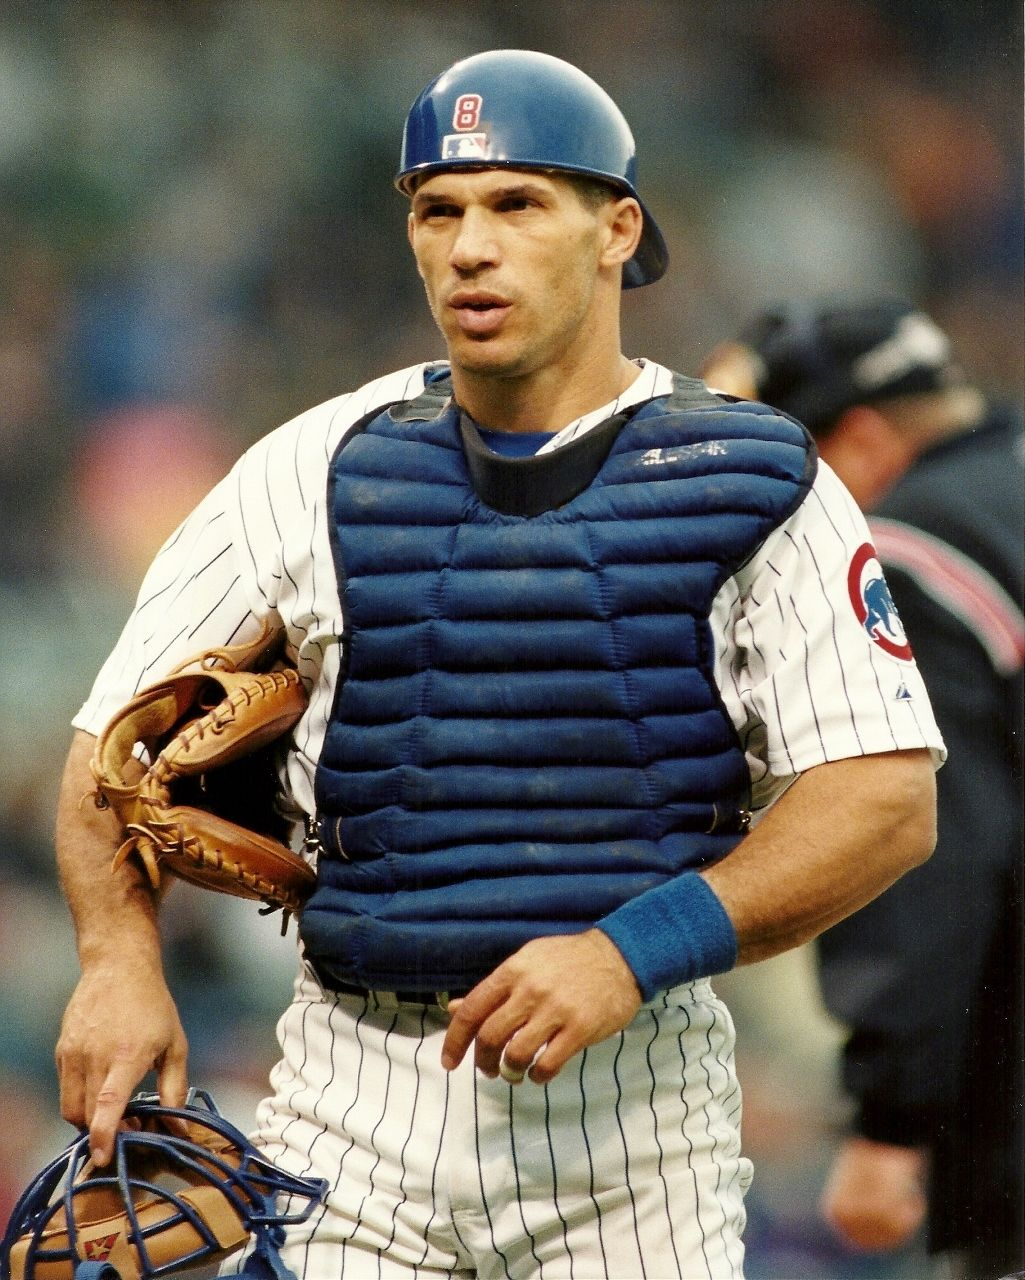 Joe Girardi 8x10 Action Photo Major League Baseball Chicago Cubs 8 Northwestern Chicago Cubs Chicago Cubs History Mlb Chicago Cubs